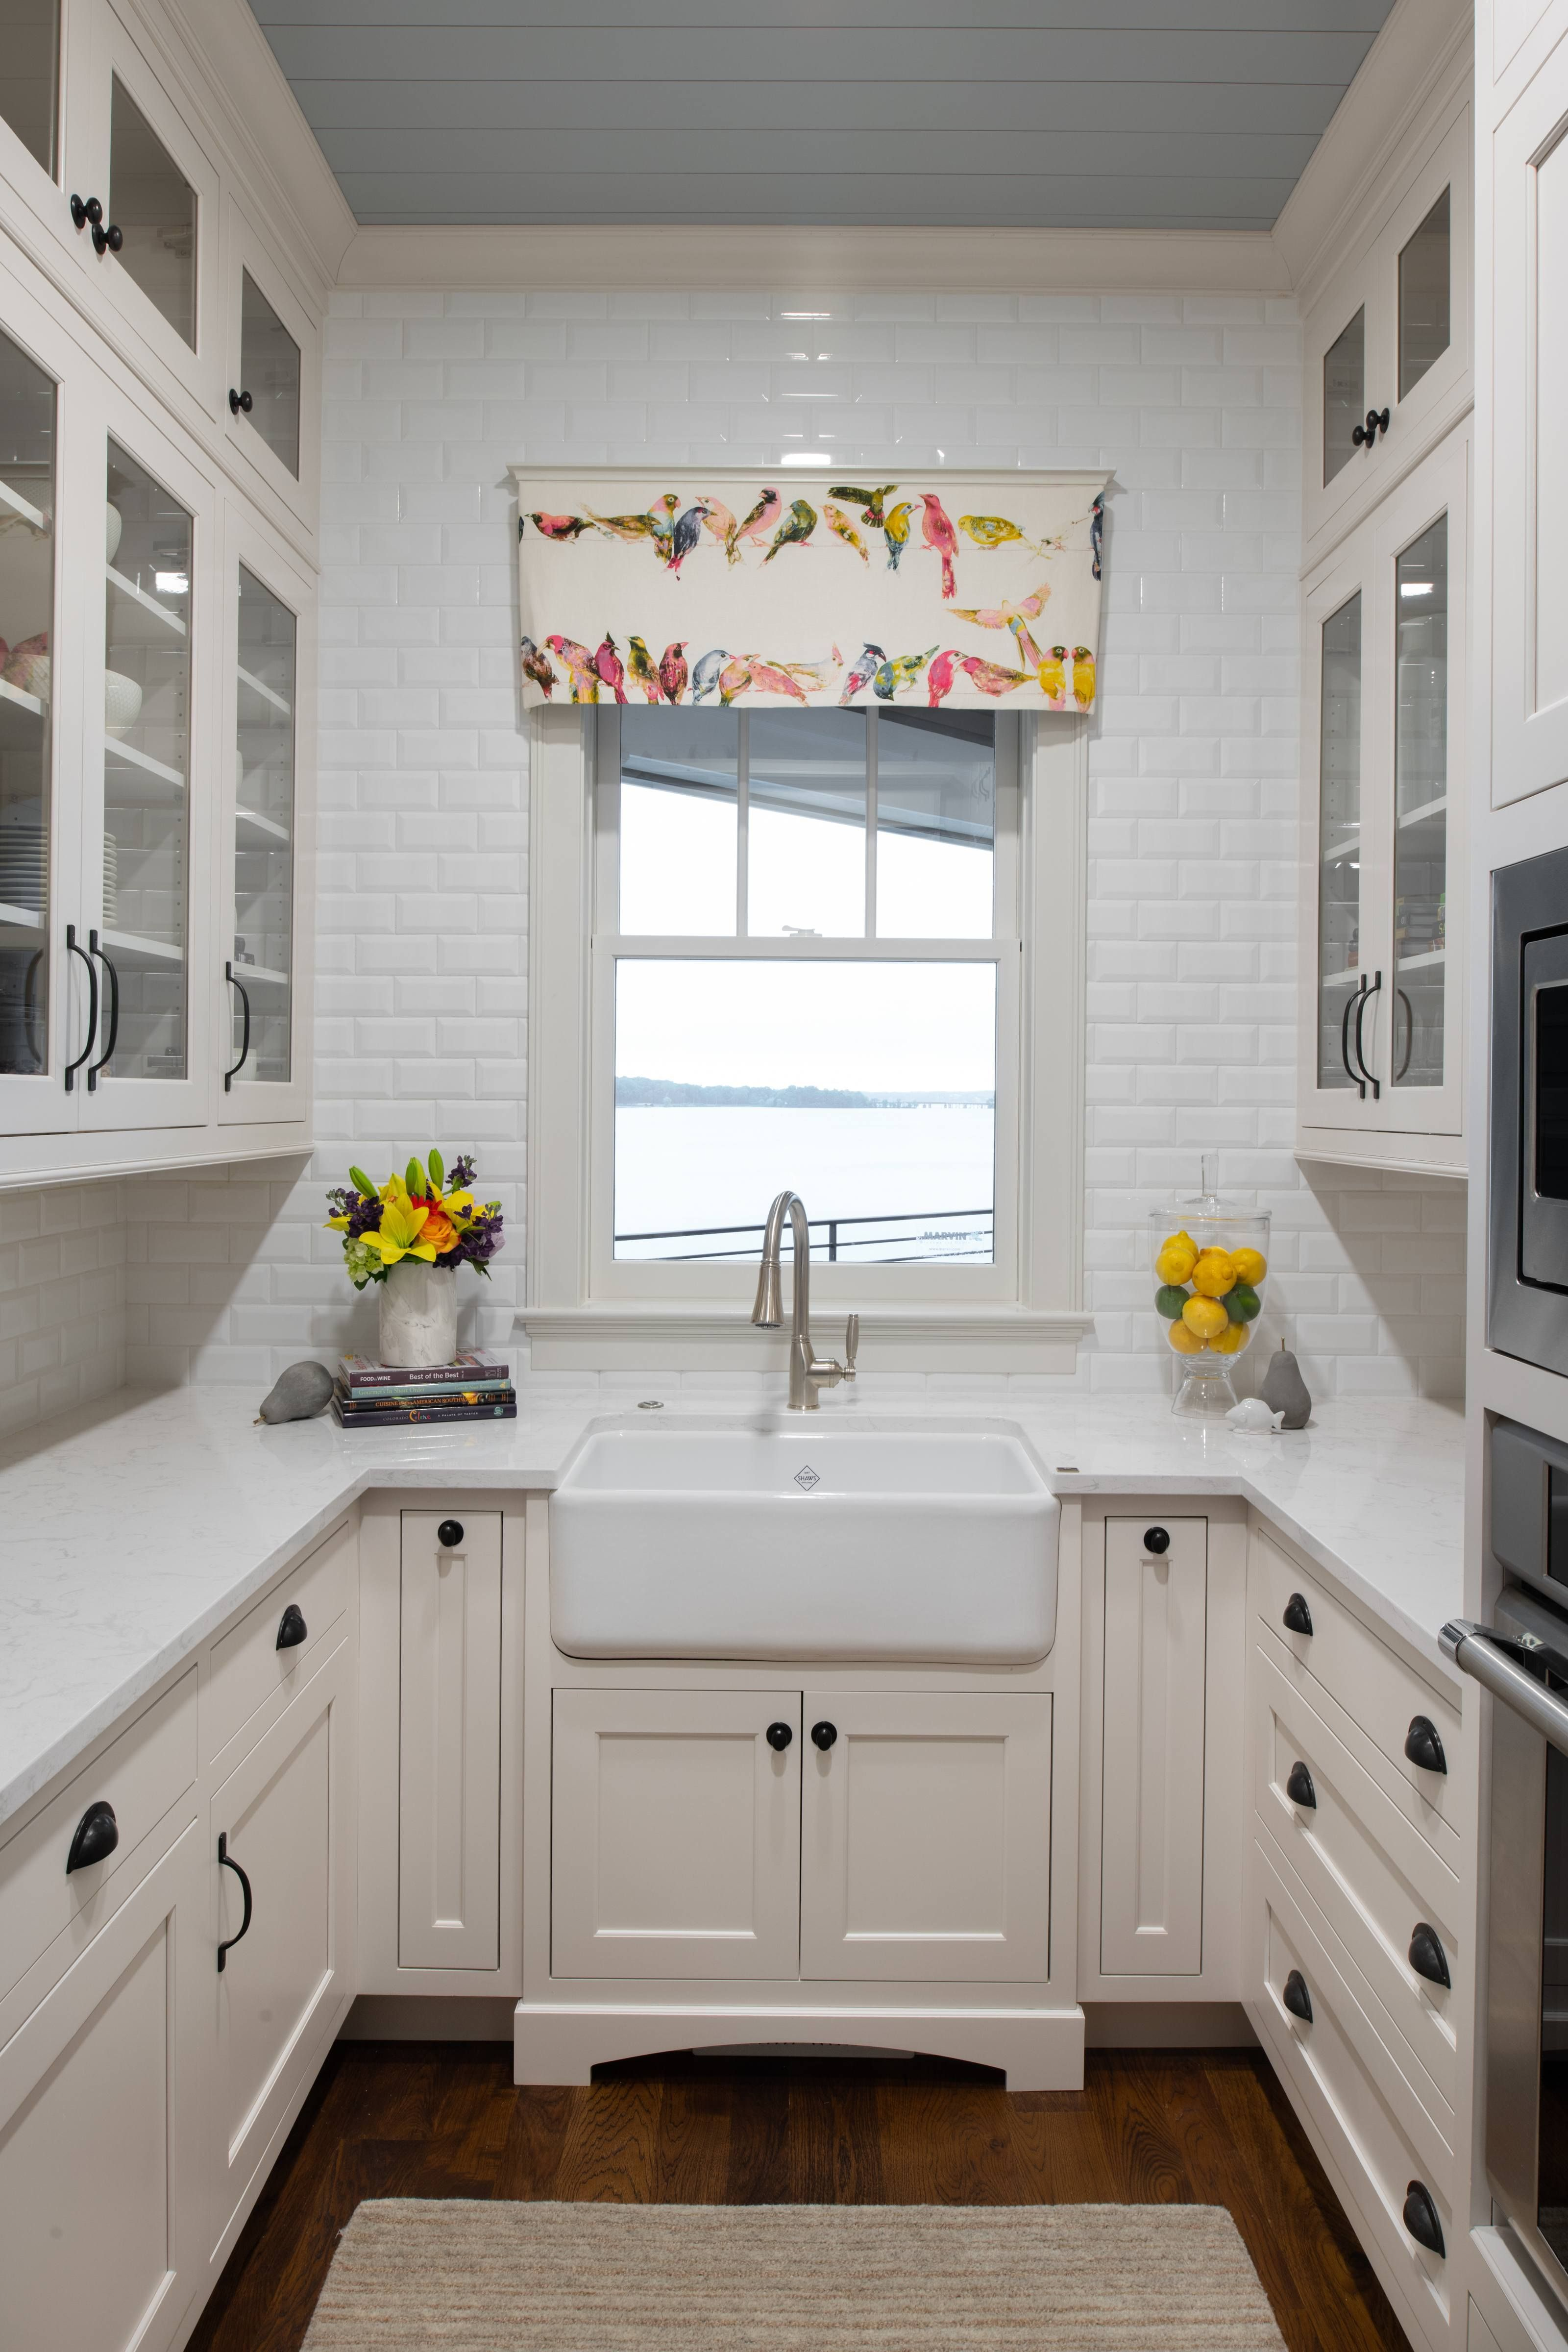 cambria countertops beauty and durability throughout the home with images u shaped kitchen on u kitchen ideas small id=11566